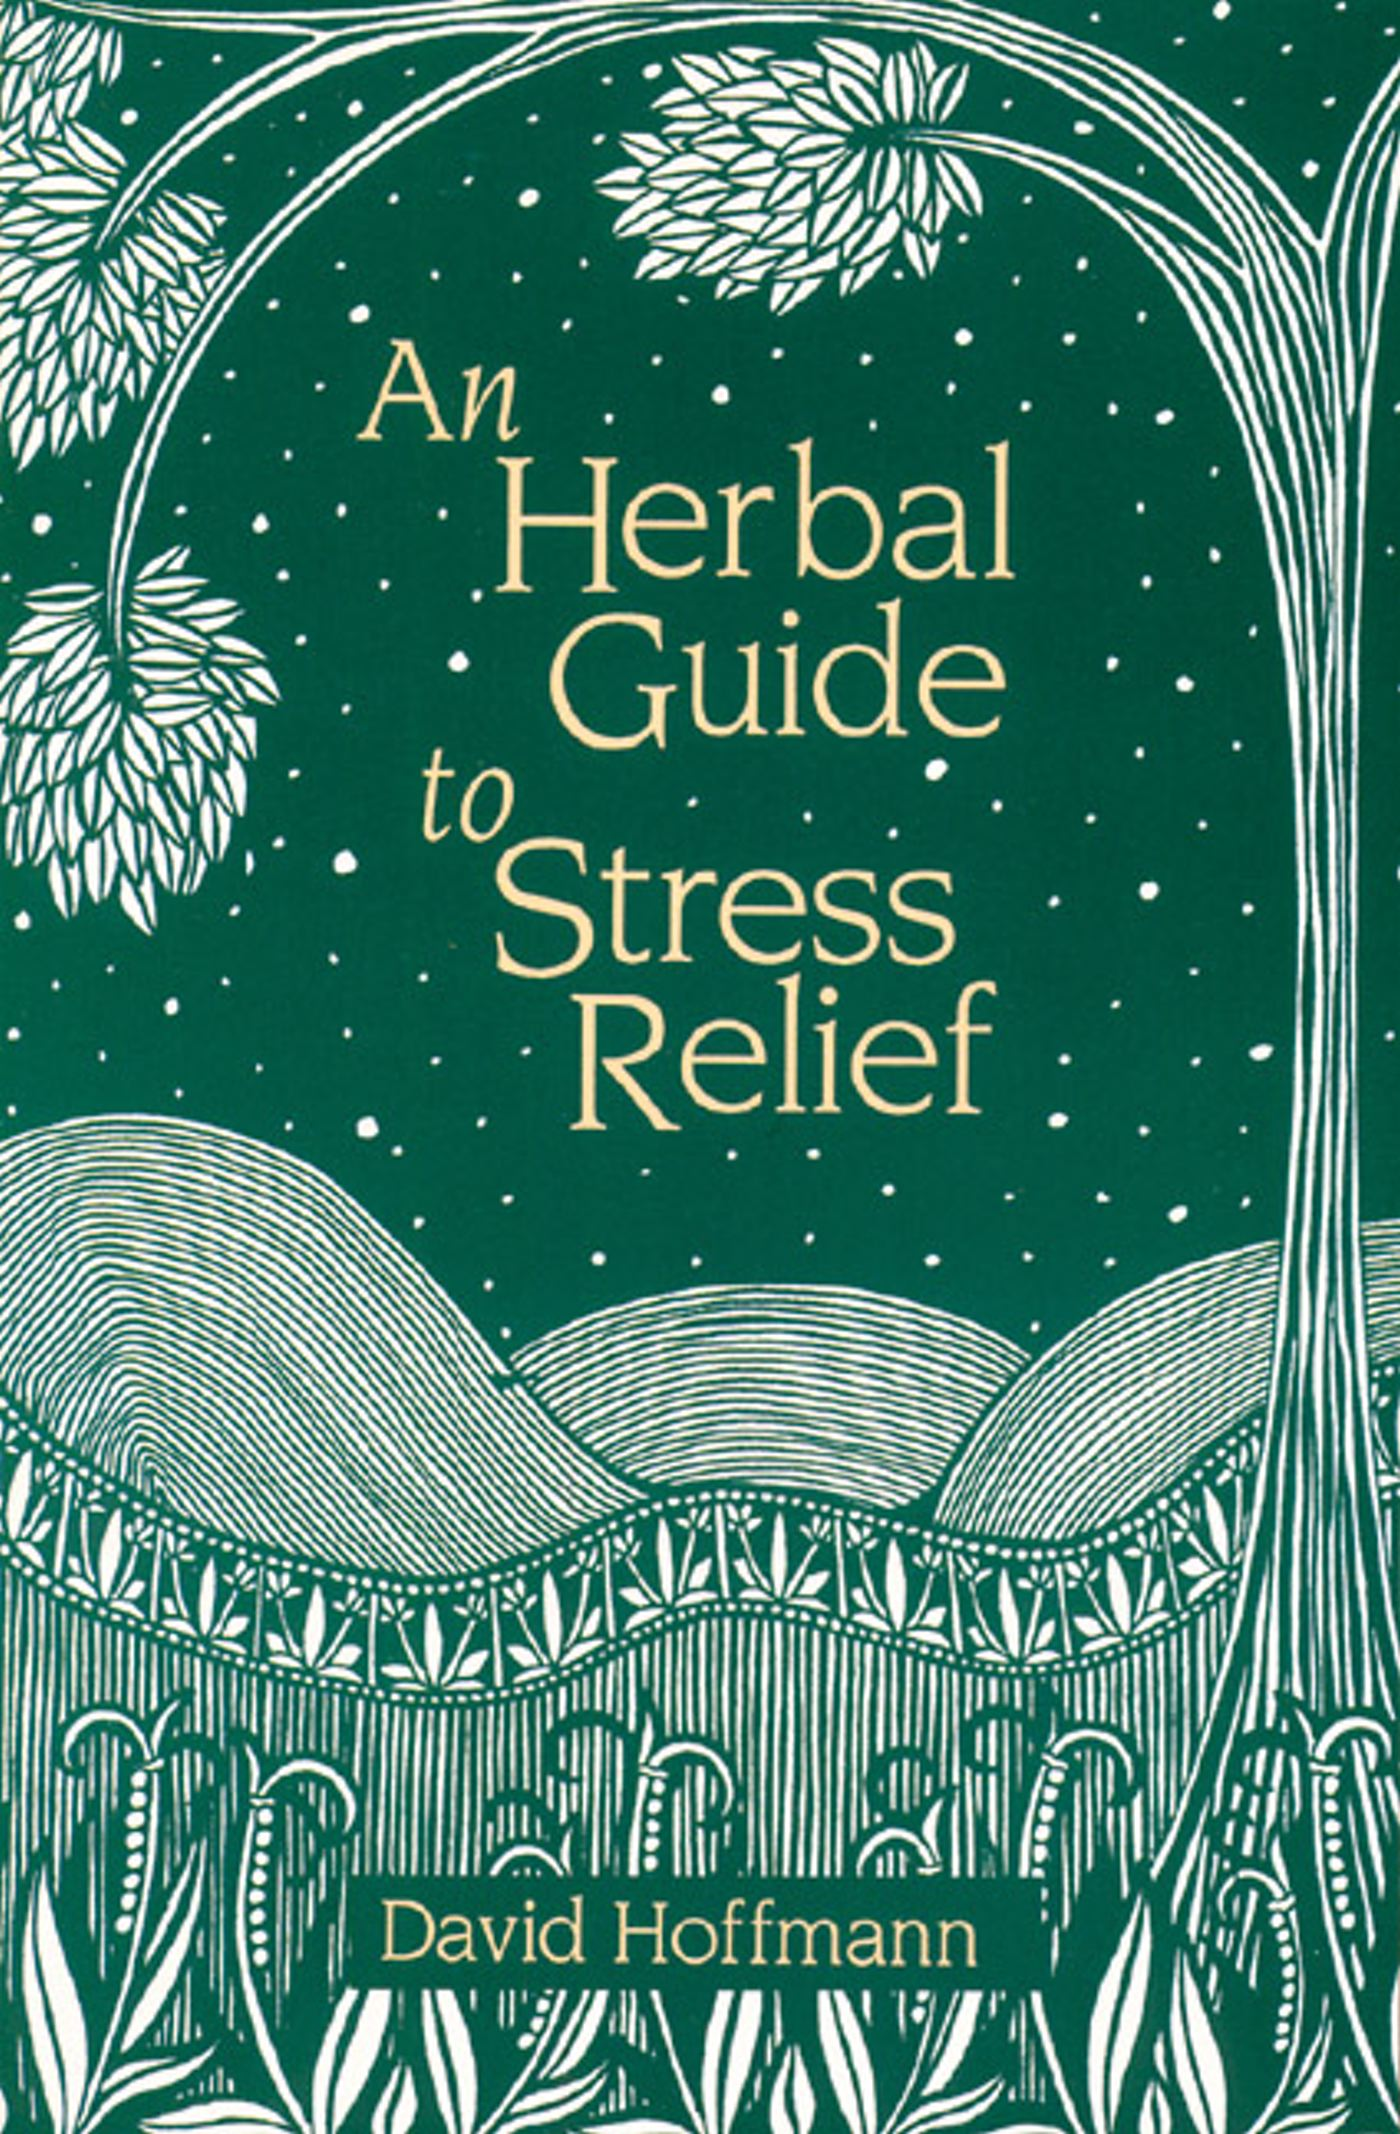 An-herbal-guide-to-stress-relief-9780892814268_hr